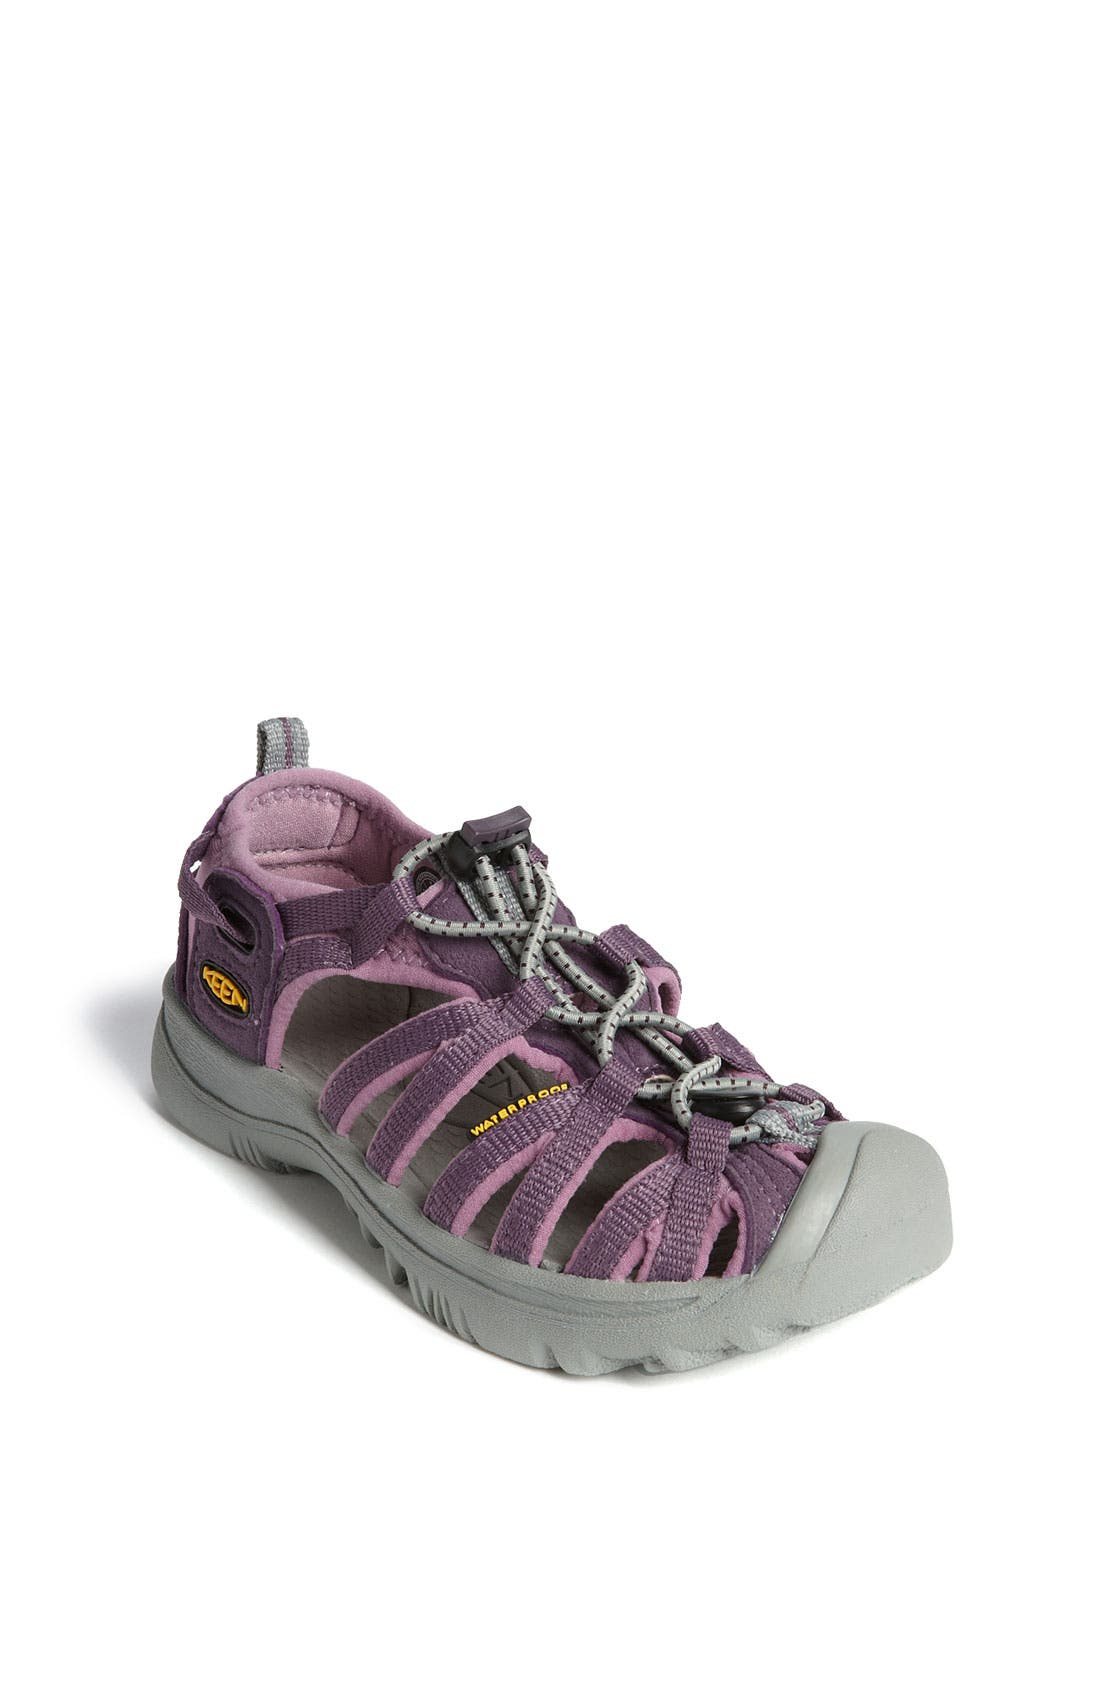 Alternate Image 1 Selected - Keen 'Whisper' Sandal (Baby & Walker)